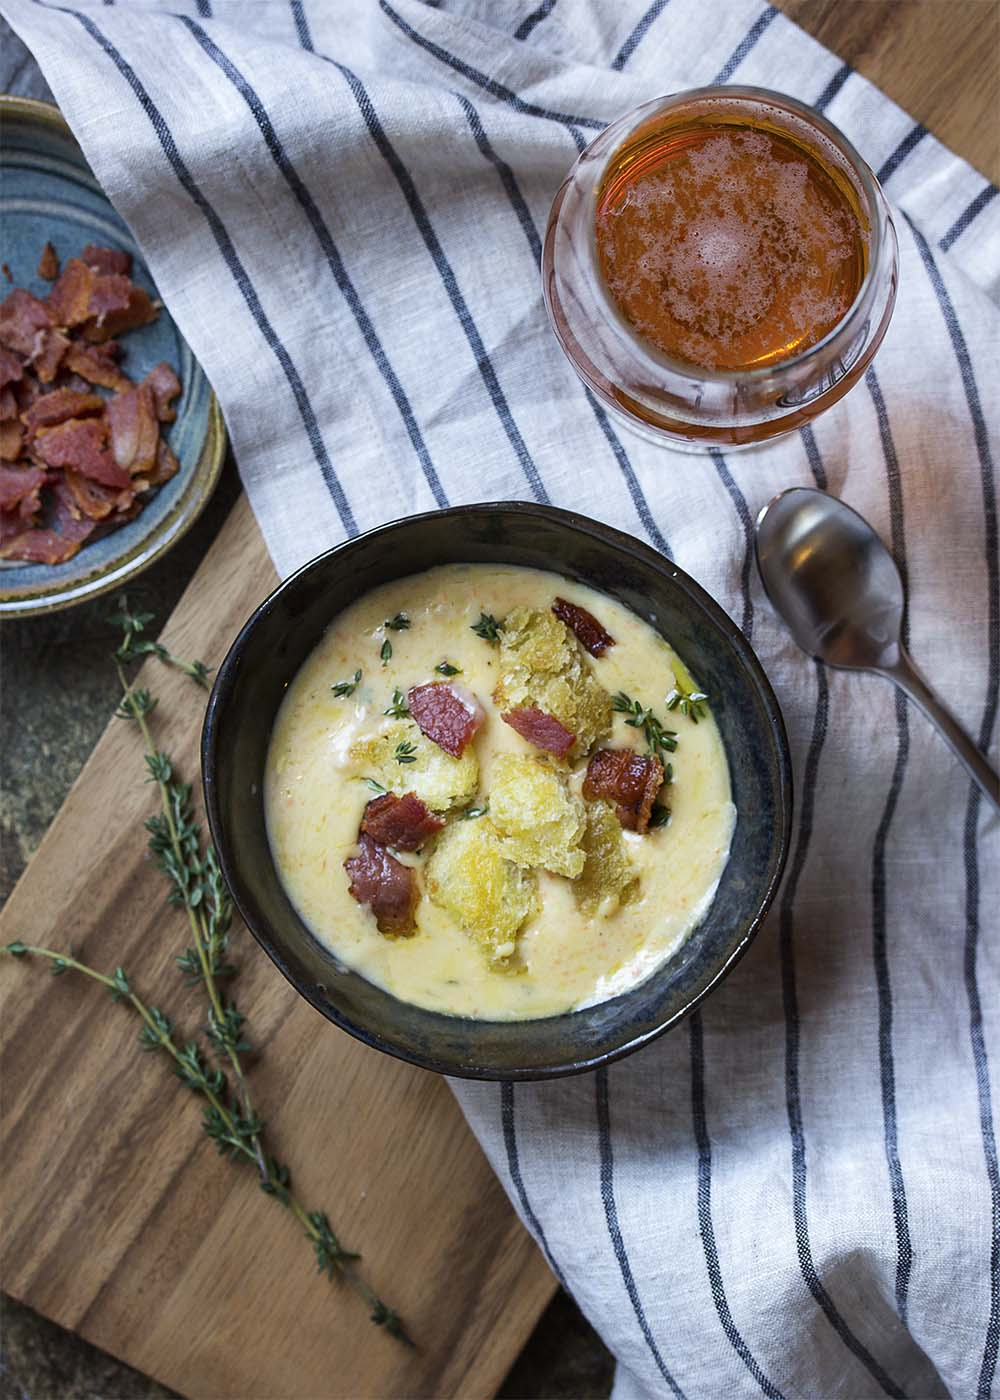 Top view of a bowl of creamy bacon cheddar soup topped with croutons.